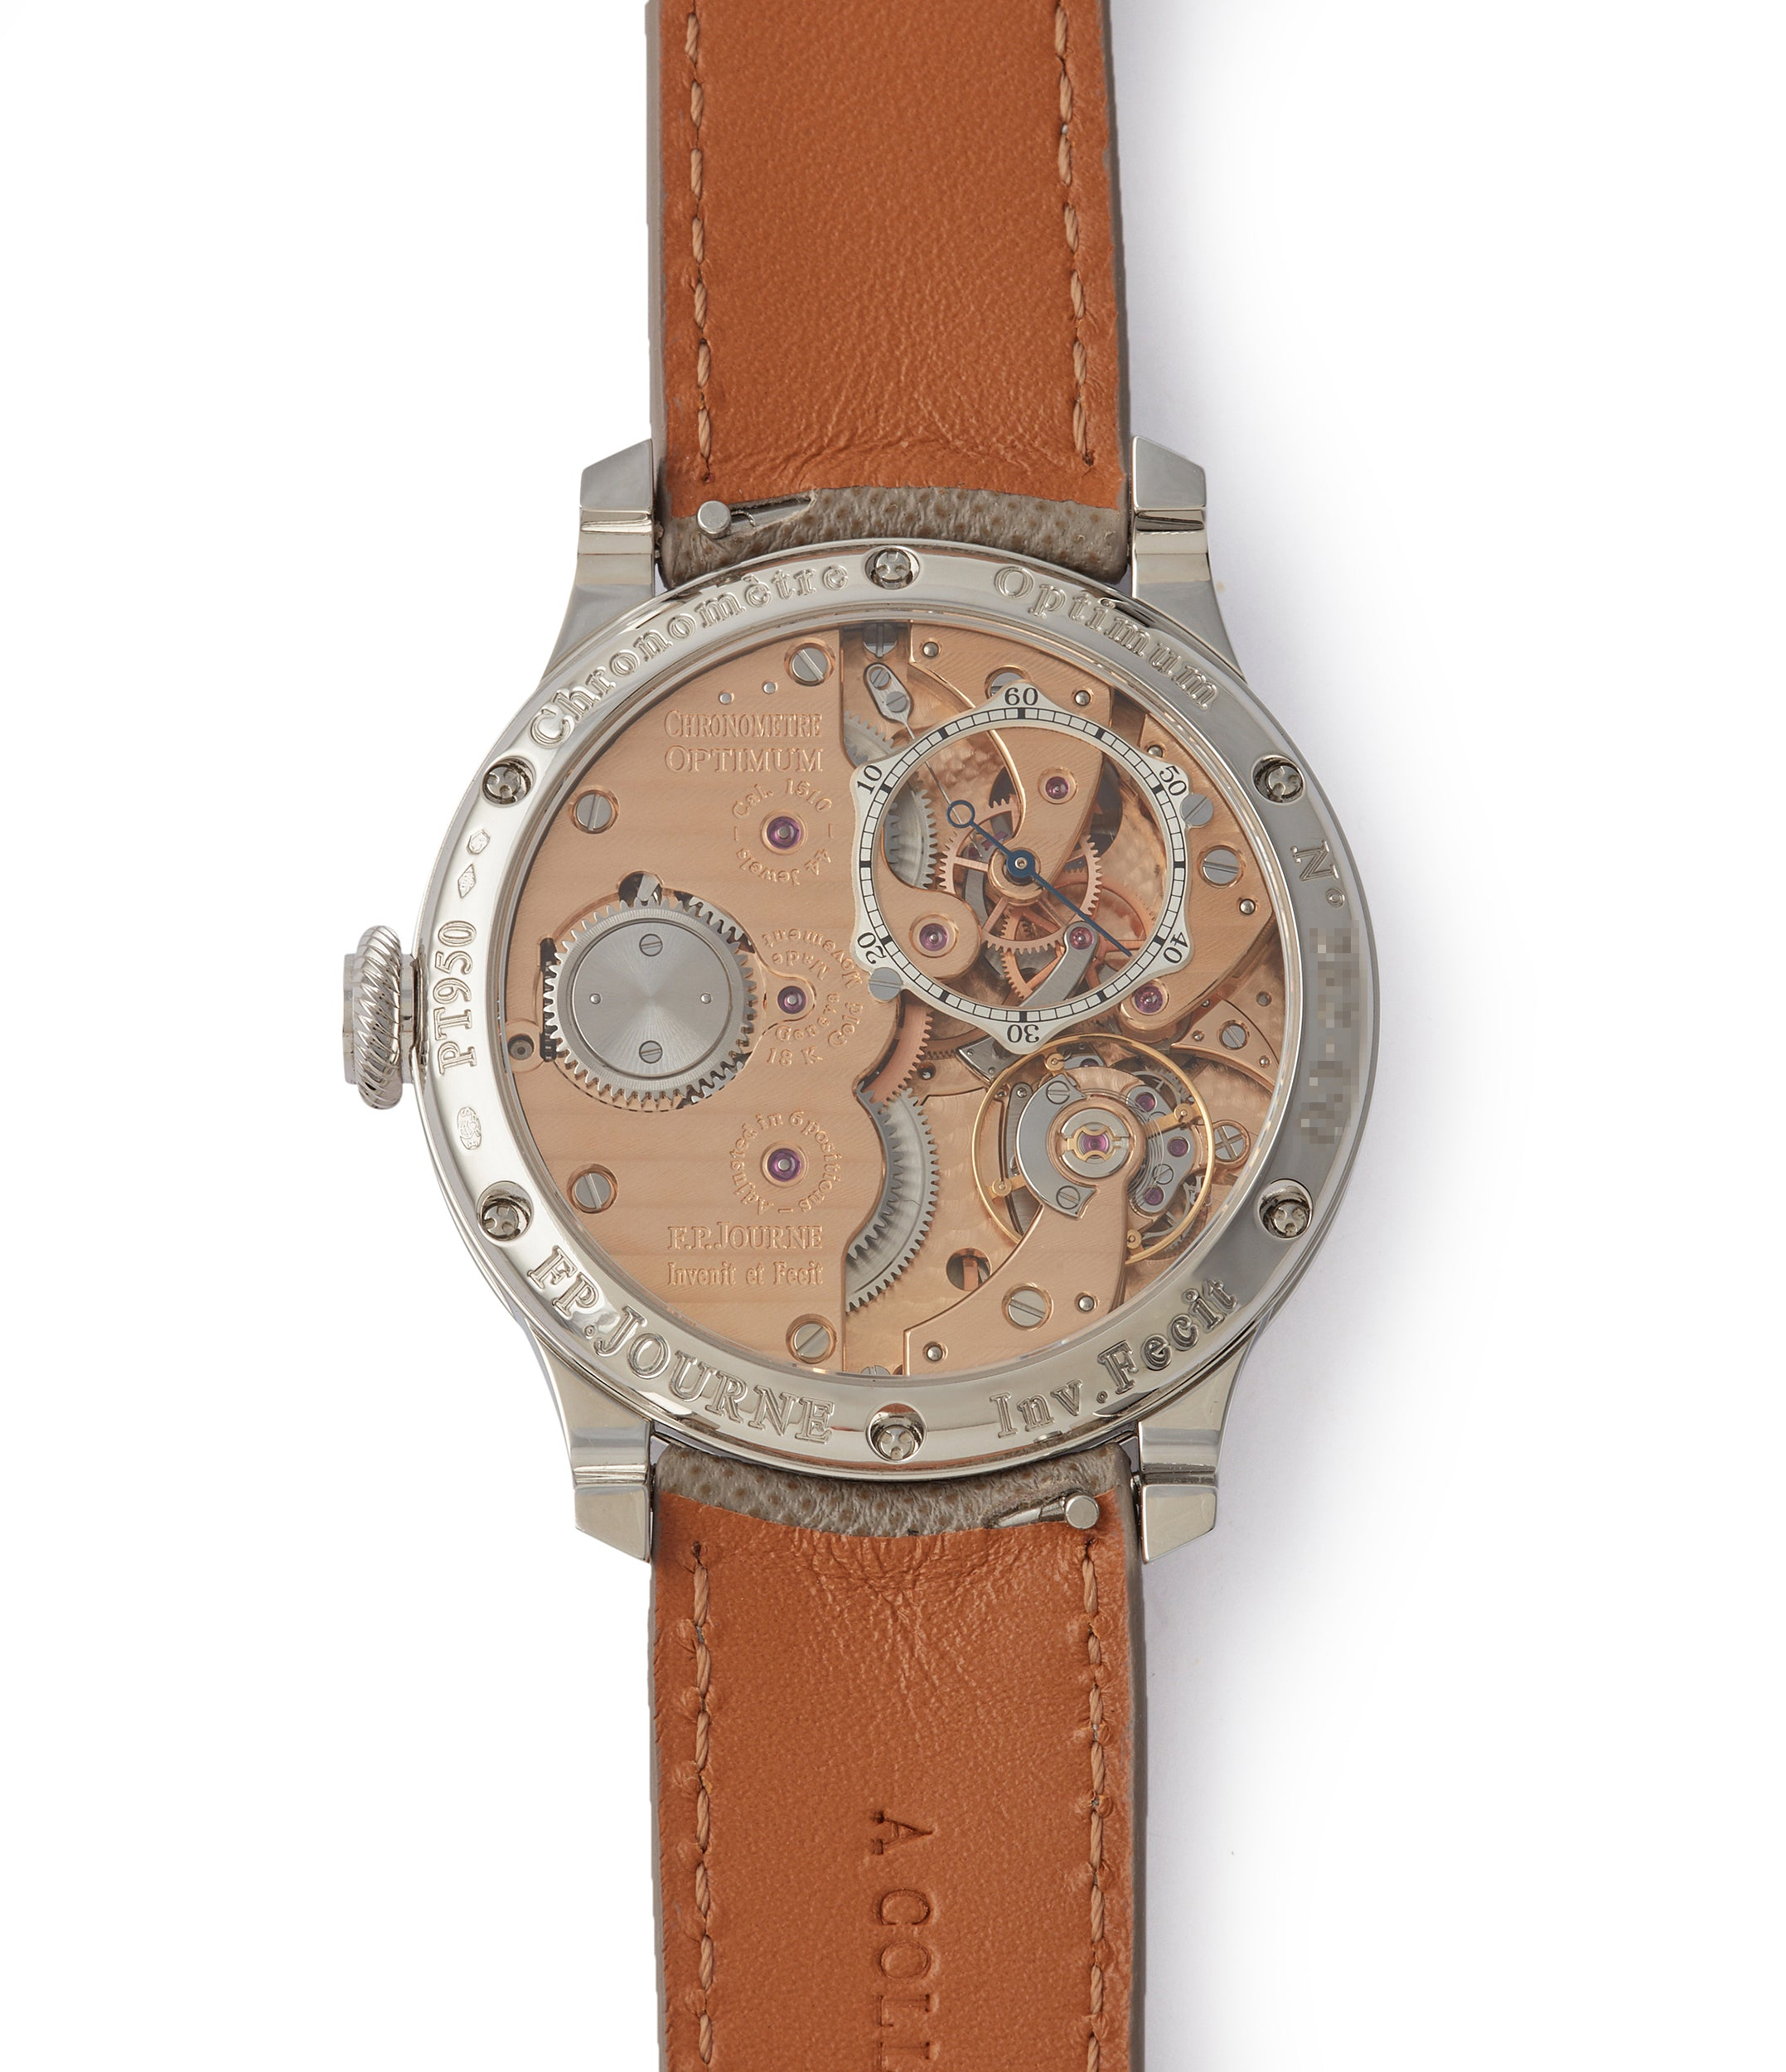 Cal. 1510 manual-winding Journe Chronometre Optimum 40mm platinum pre-owned dress watch for sale at A Collected Man London selling independent watchmakers